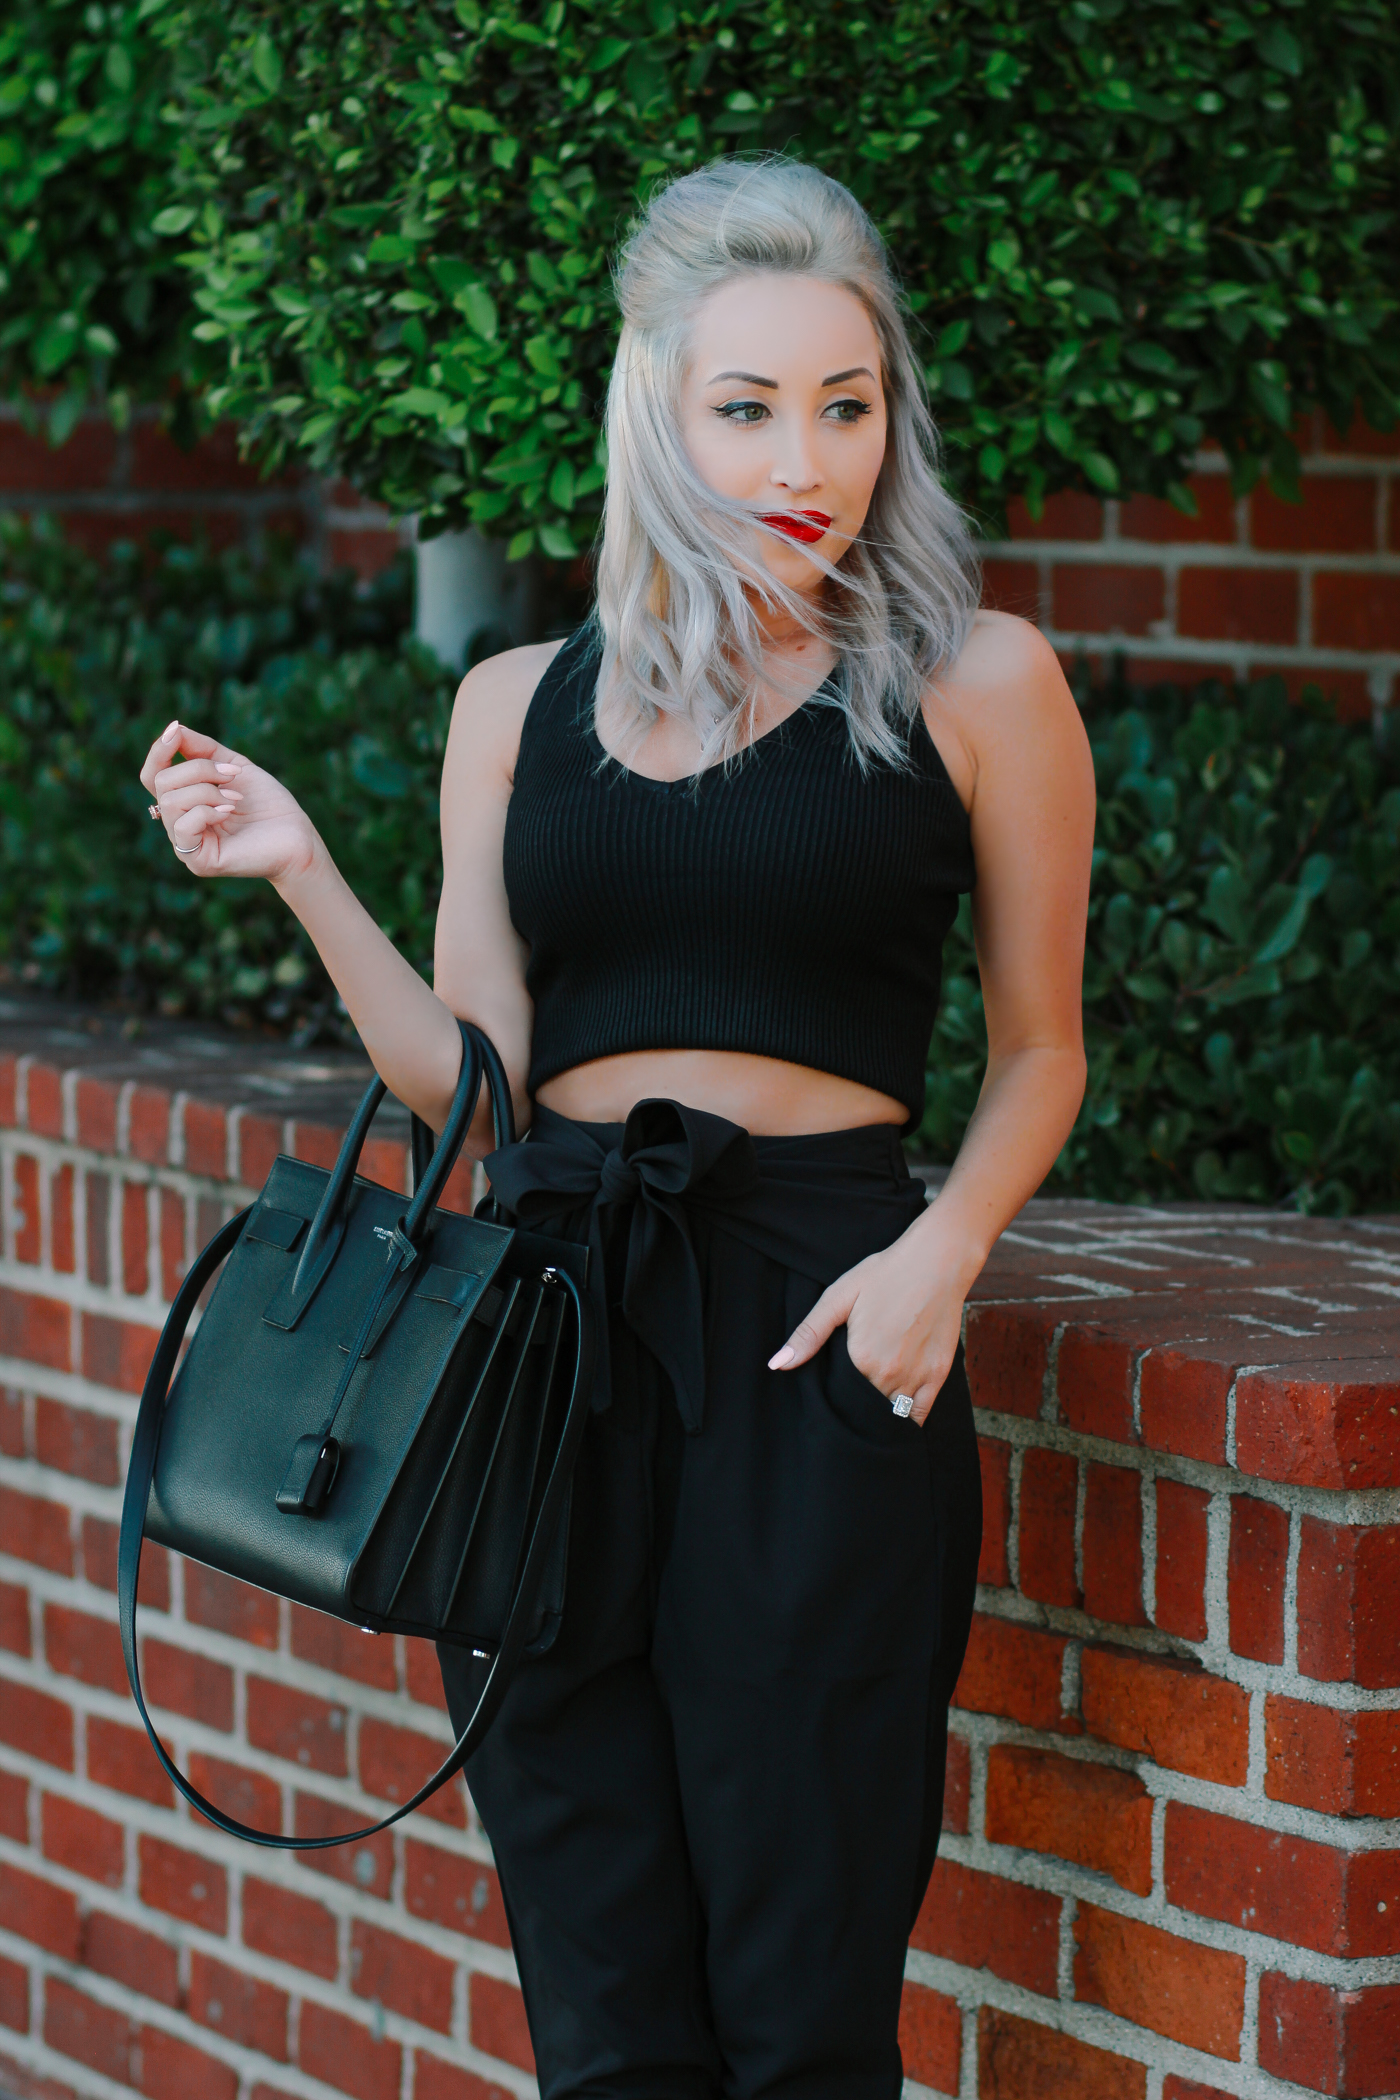 Blondie in the City | High Waisted Dress Pants @nakdfashion (20% off w/ code Hayley20) | Saint Laurent Sac De Jour Bag